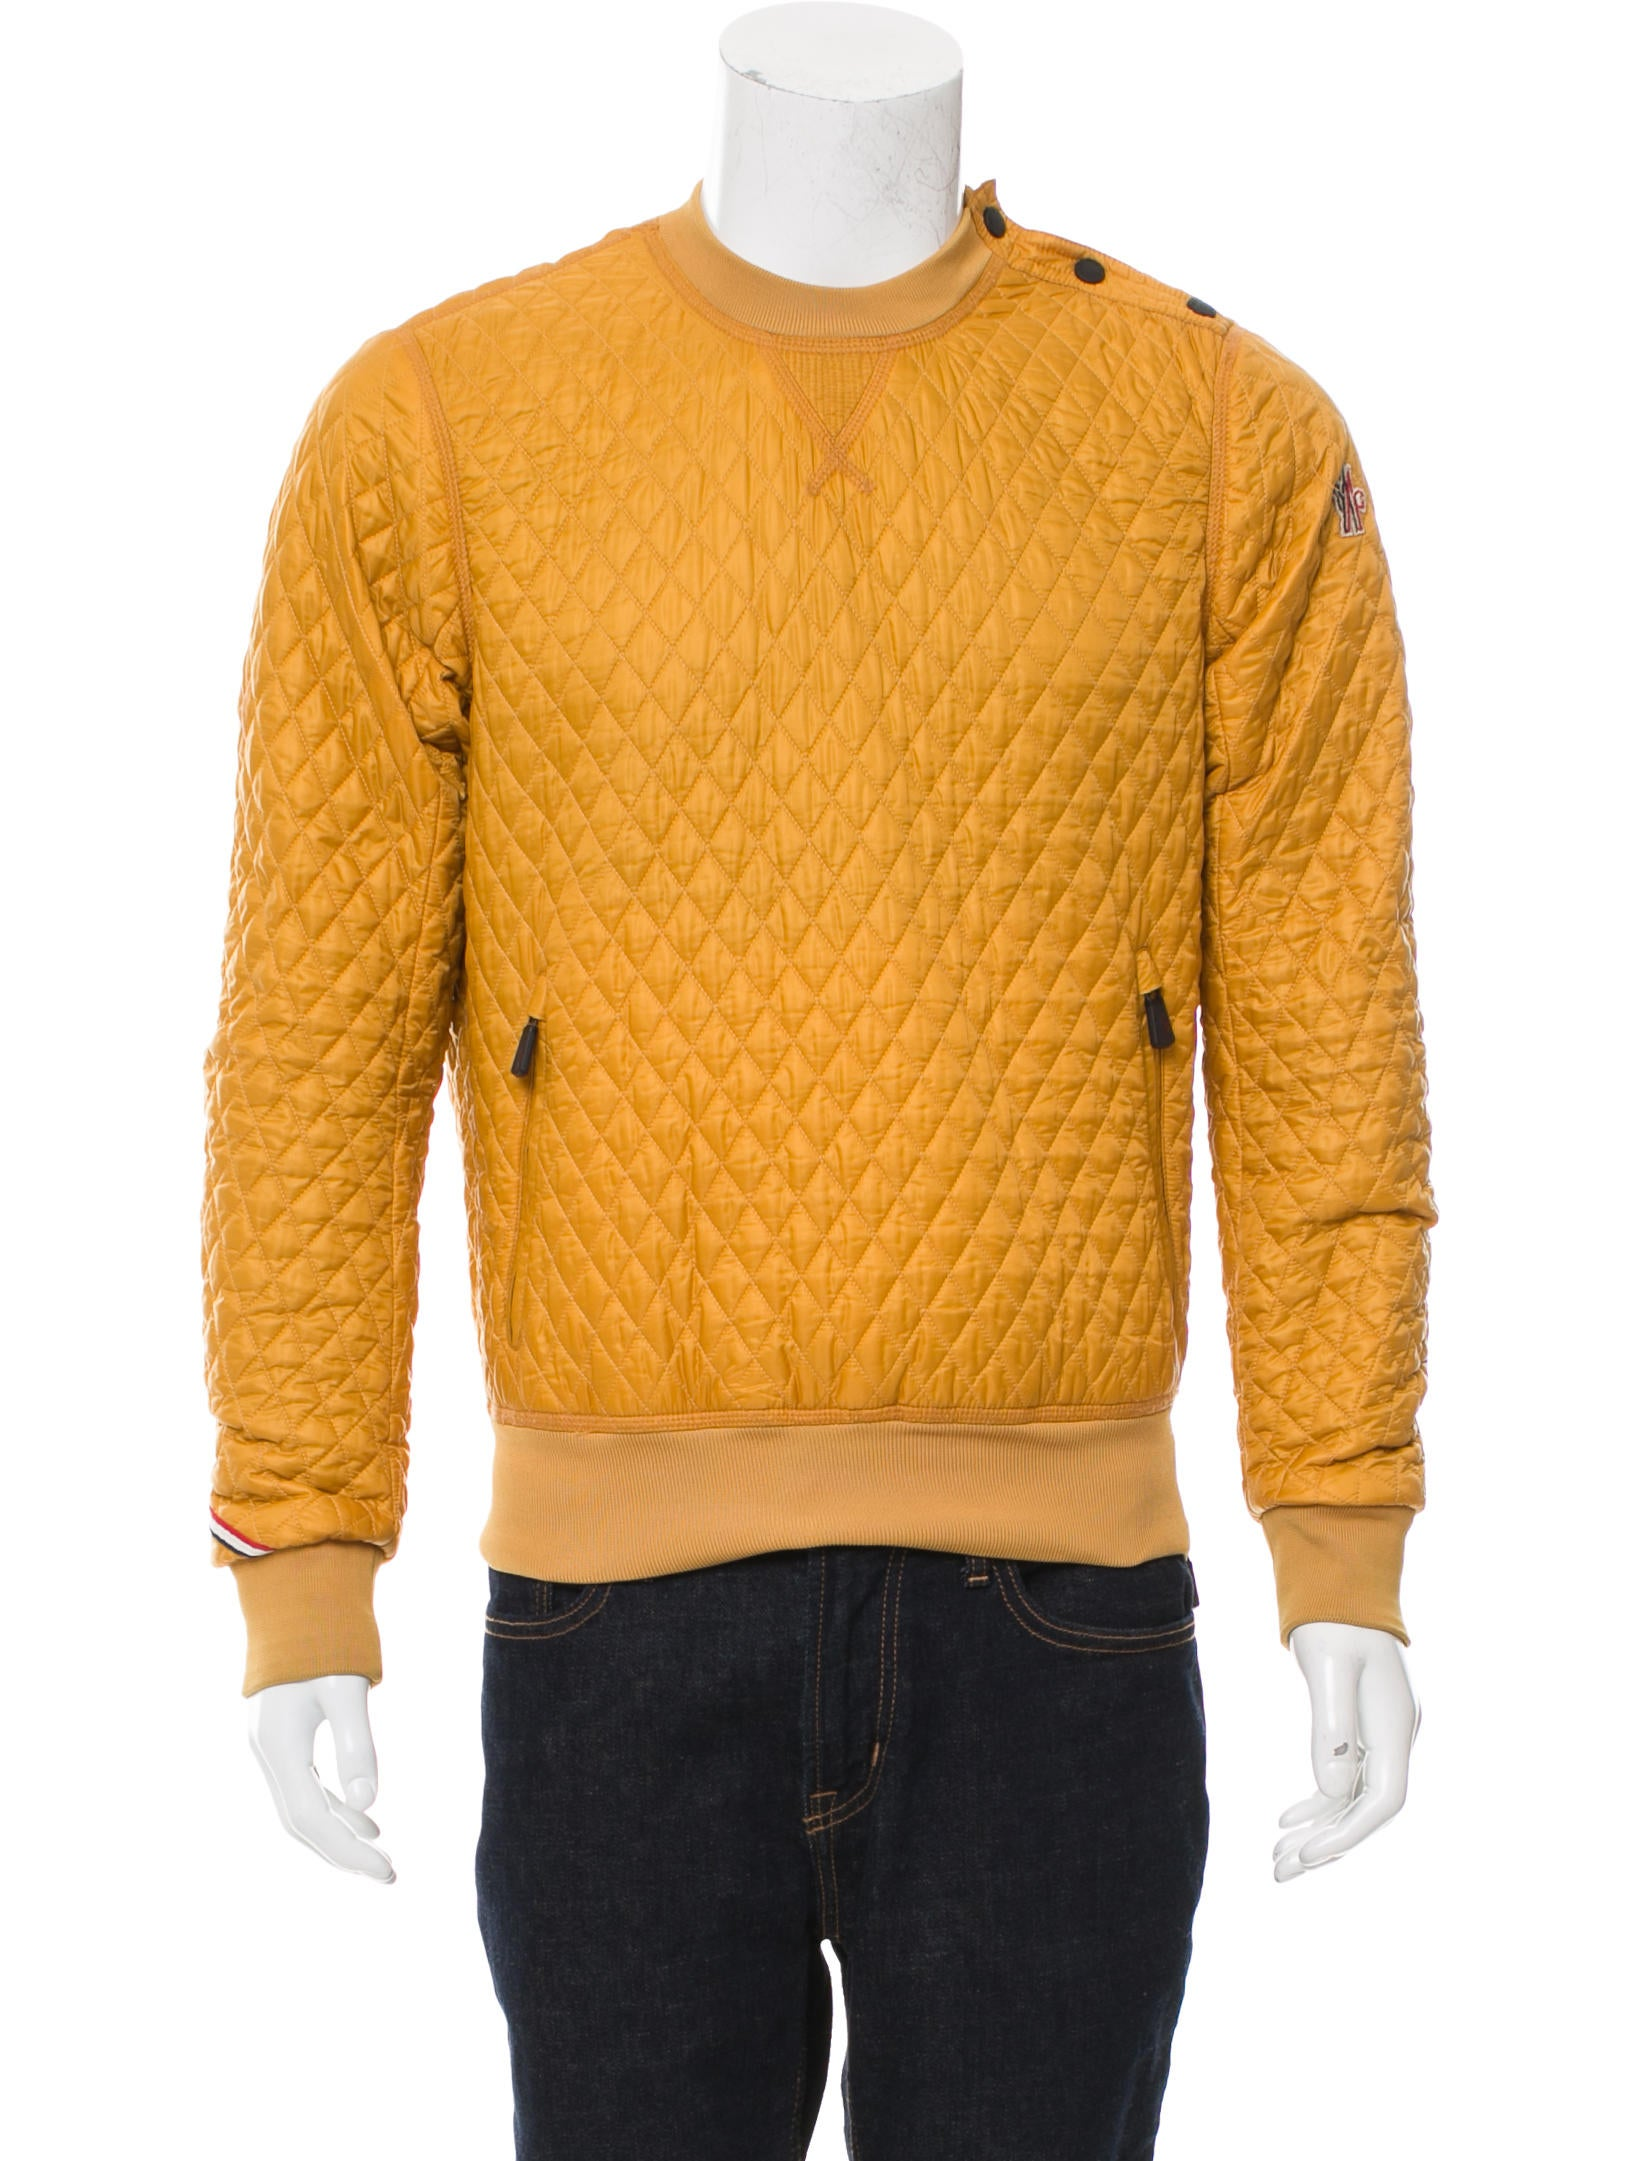 945dedcbf Moncler Grenoble Valmorel Quilted Sweatshirt - Clothing - MGREN20081 ...